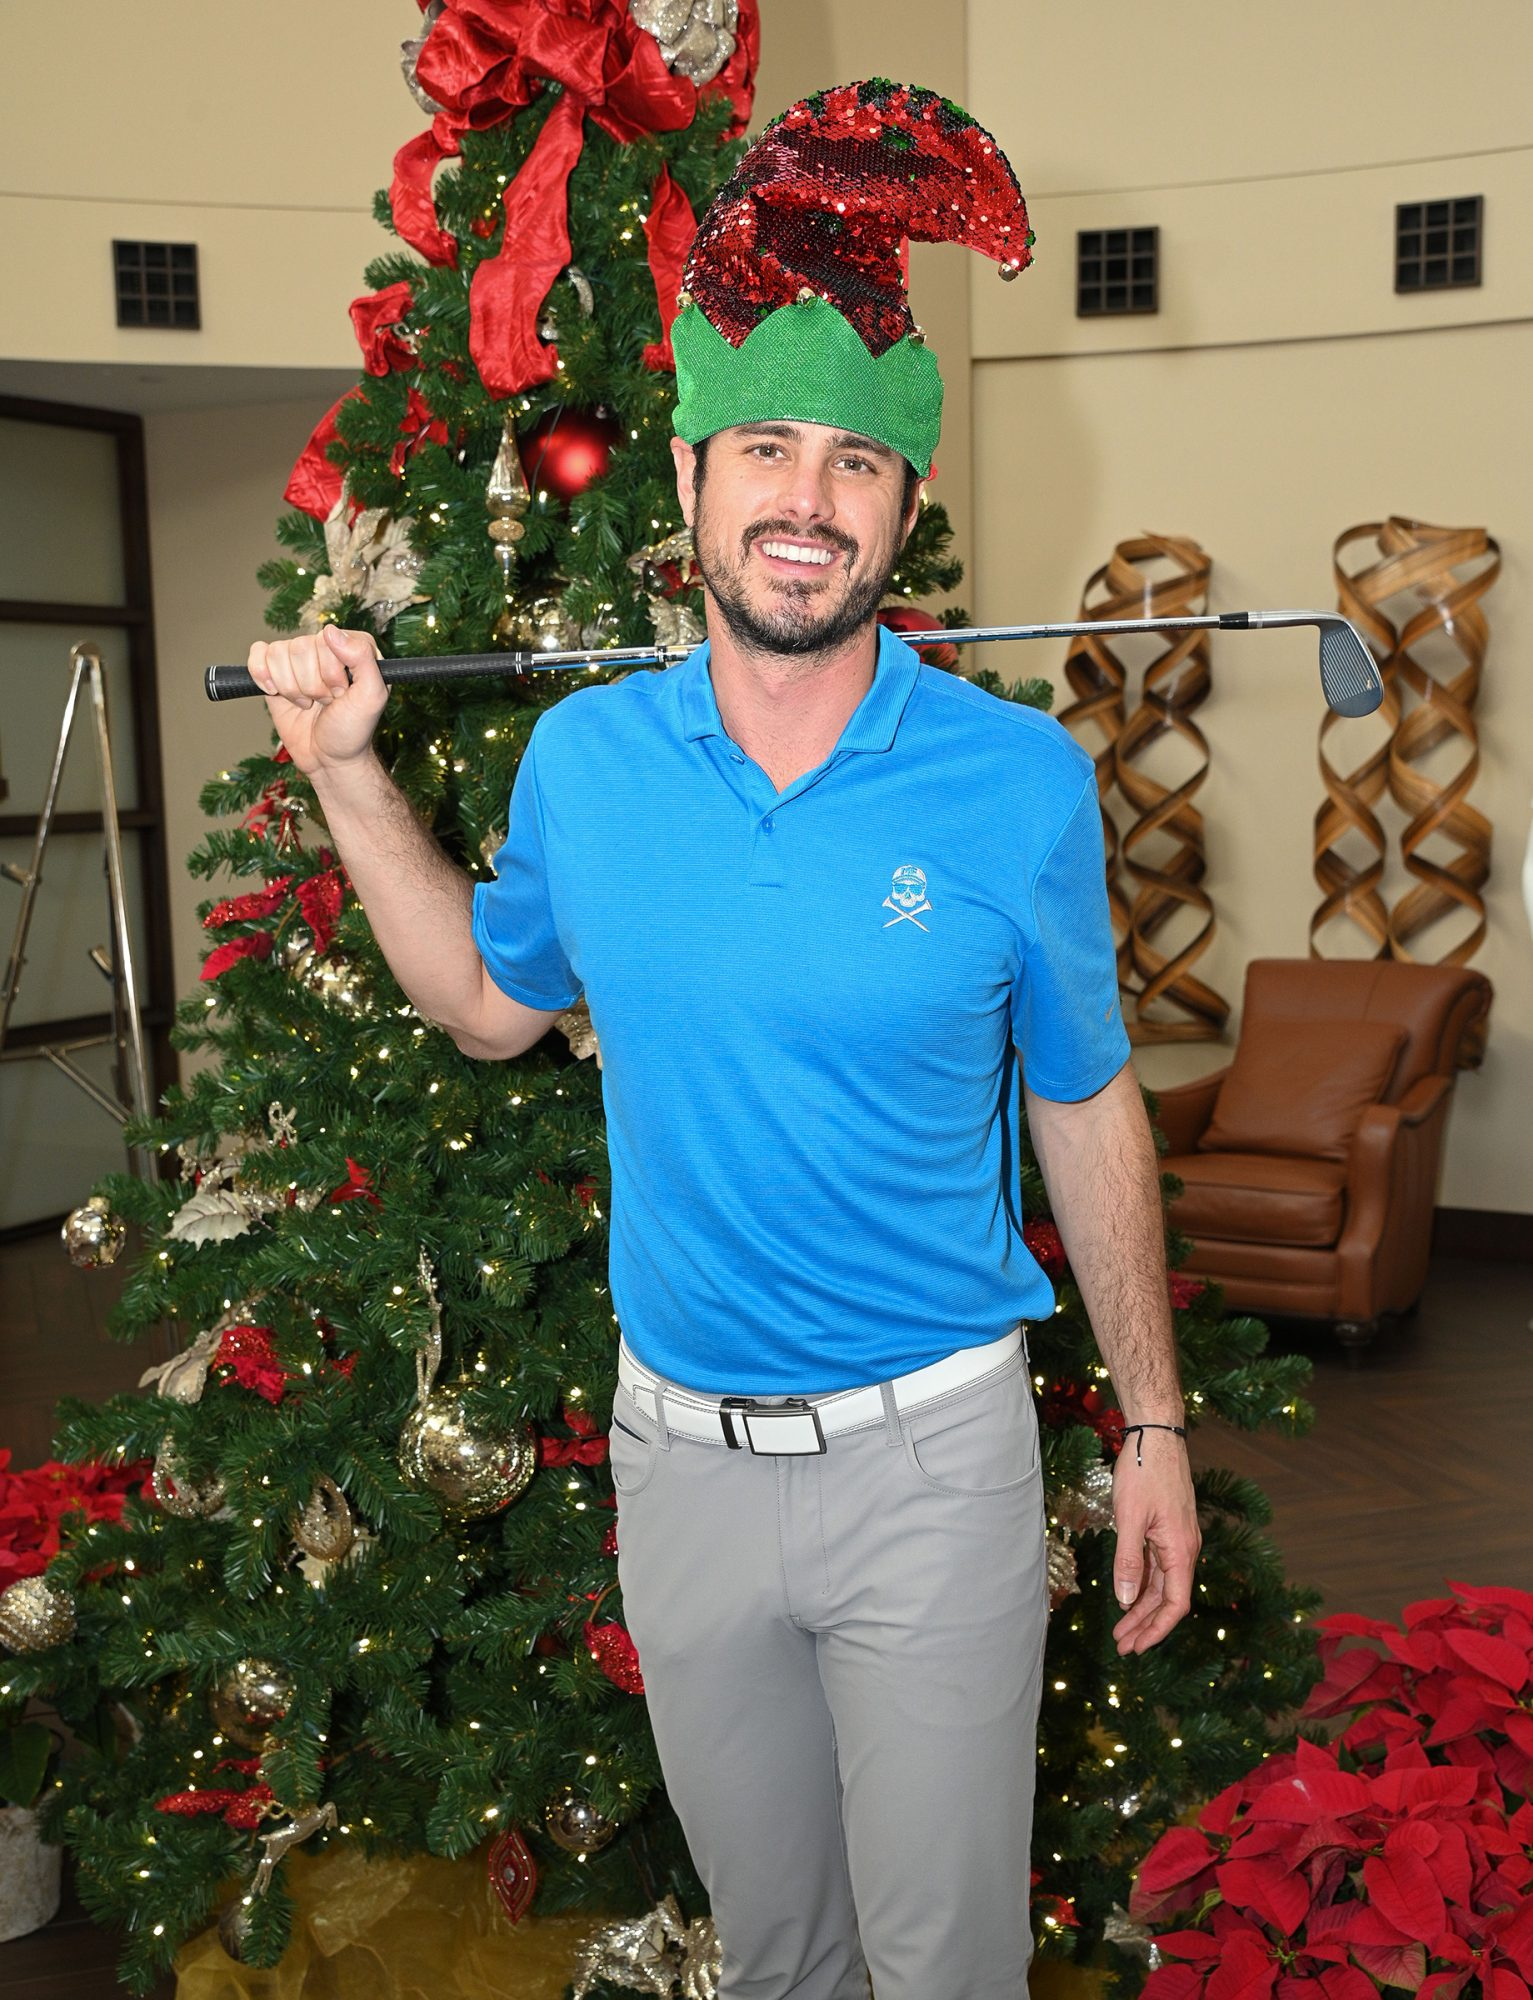 Ben Higgins at an event for the Tournament of Champion Dimond Resorts in Lake Buena Vista, Florida on Dec. 15, 2020